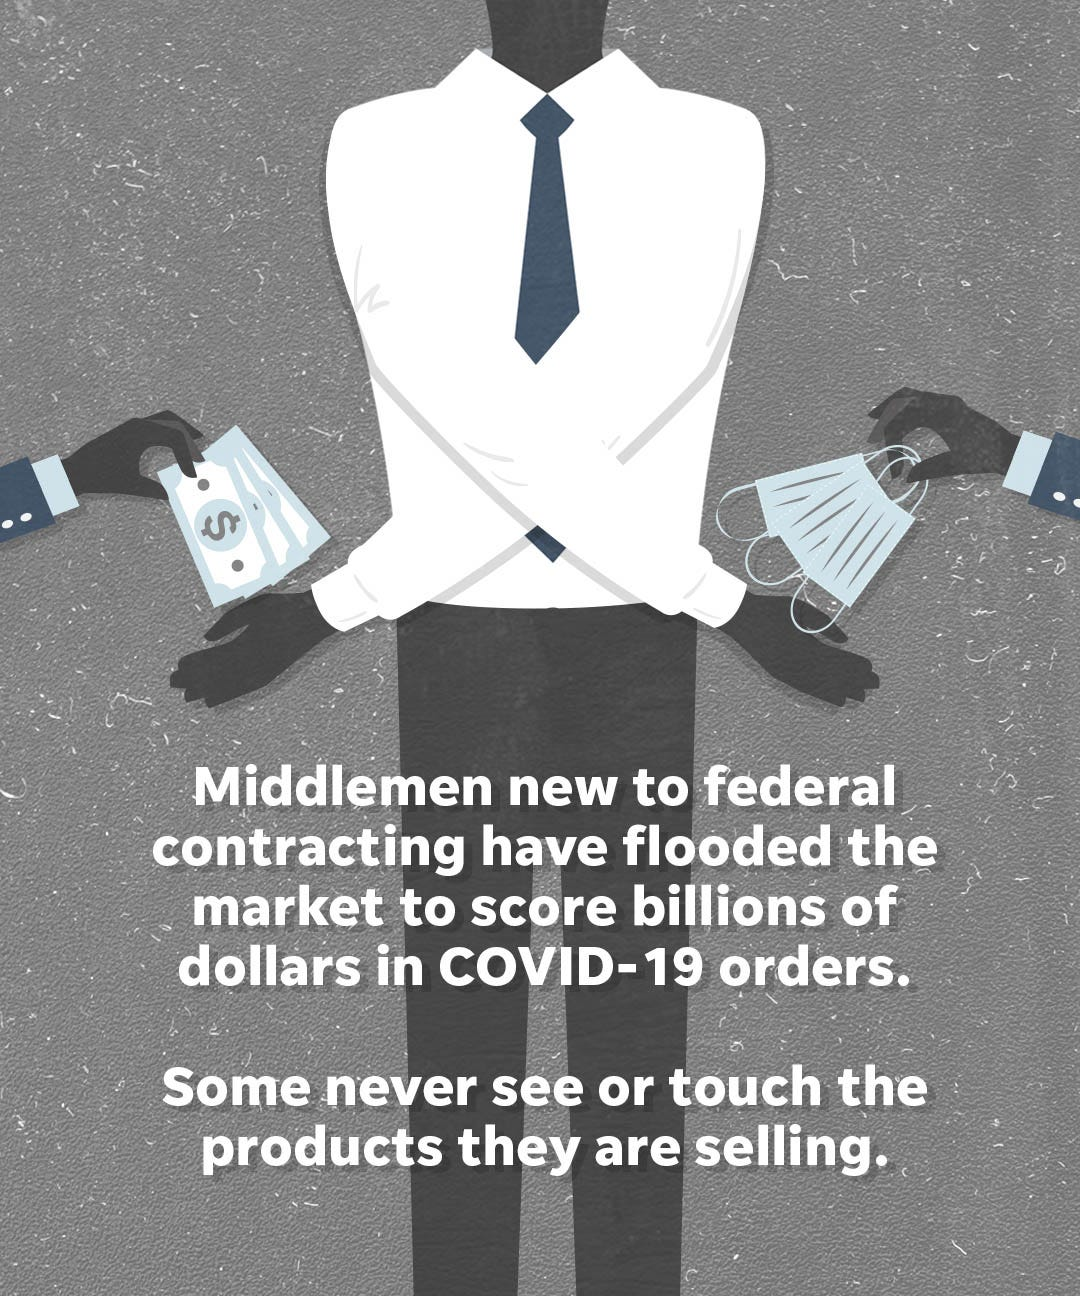 Middlemen new to federal contracting have flooded the market to score billions of dollars in COVID-19 orders.